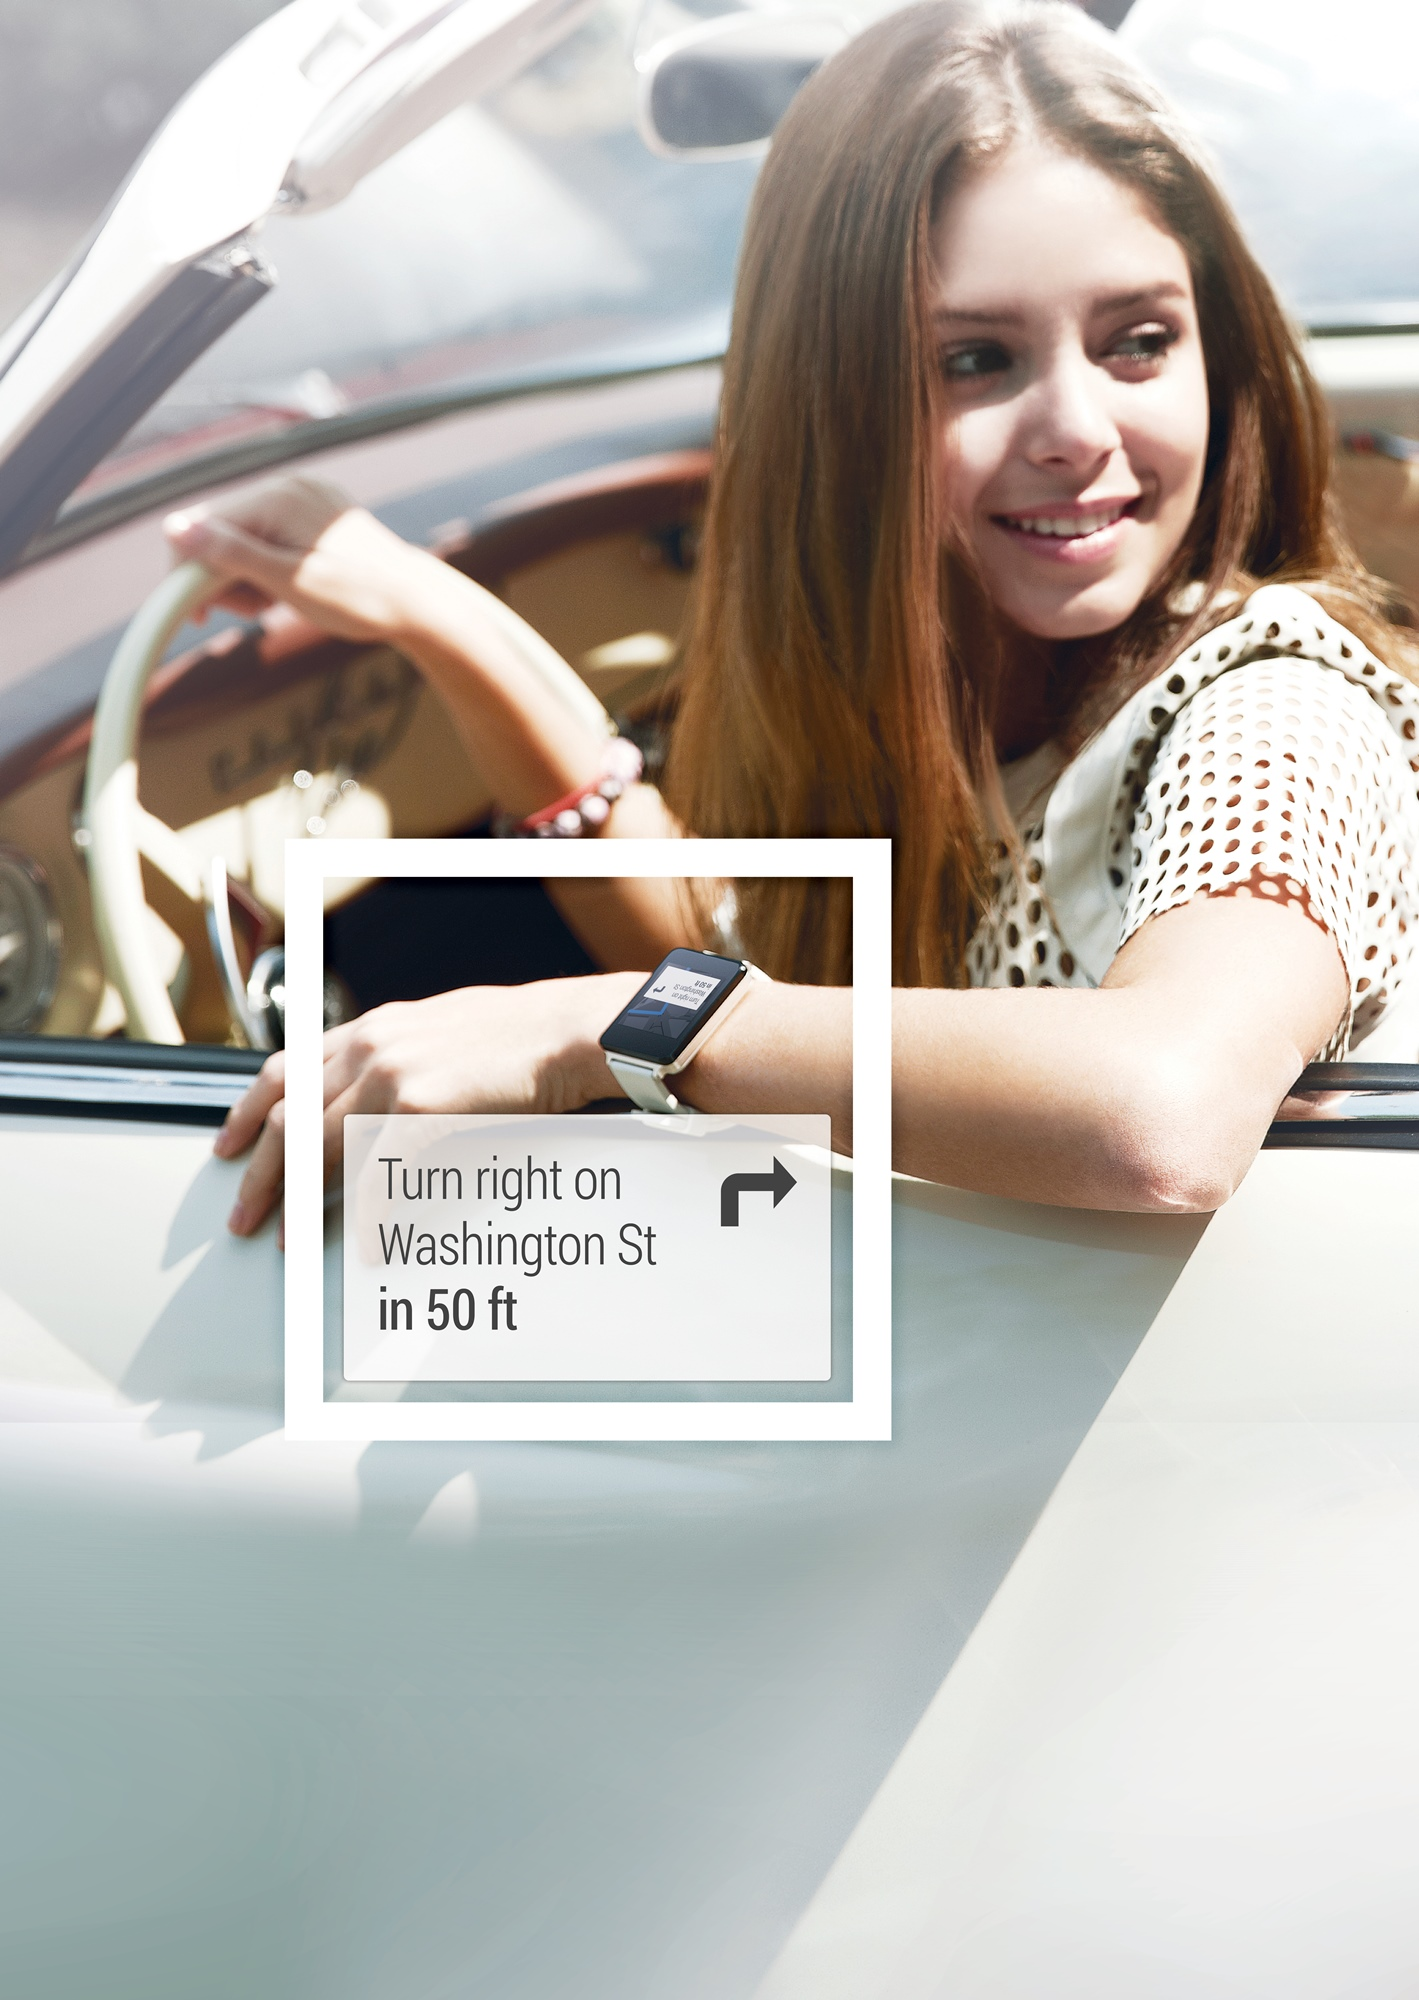 """A poster of a woman driving her car while her LG watch directs her to """"Turn right on Washington St in 50 ft."""""""